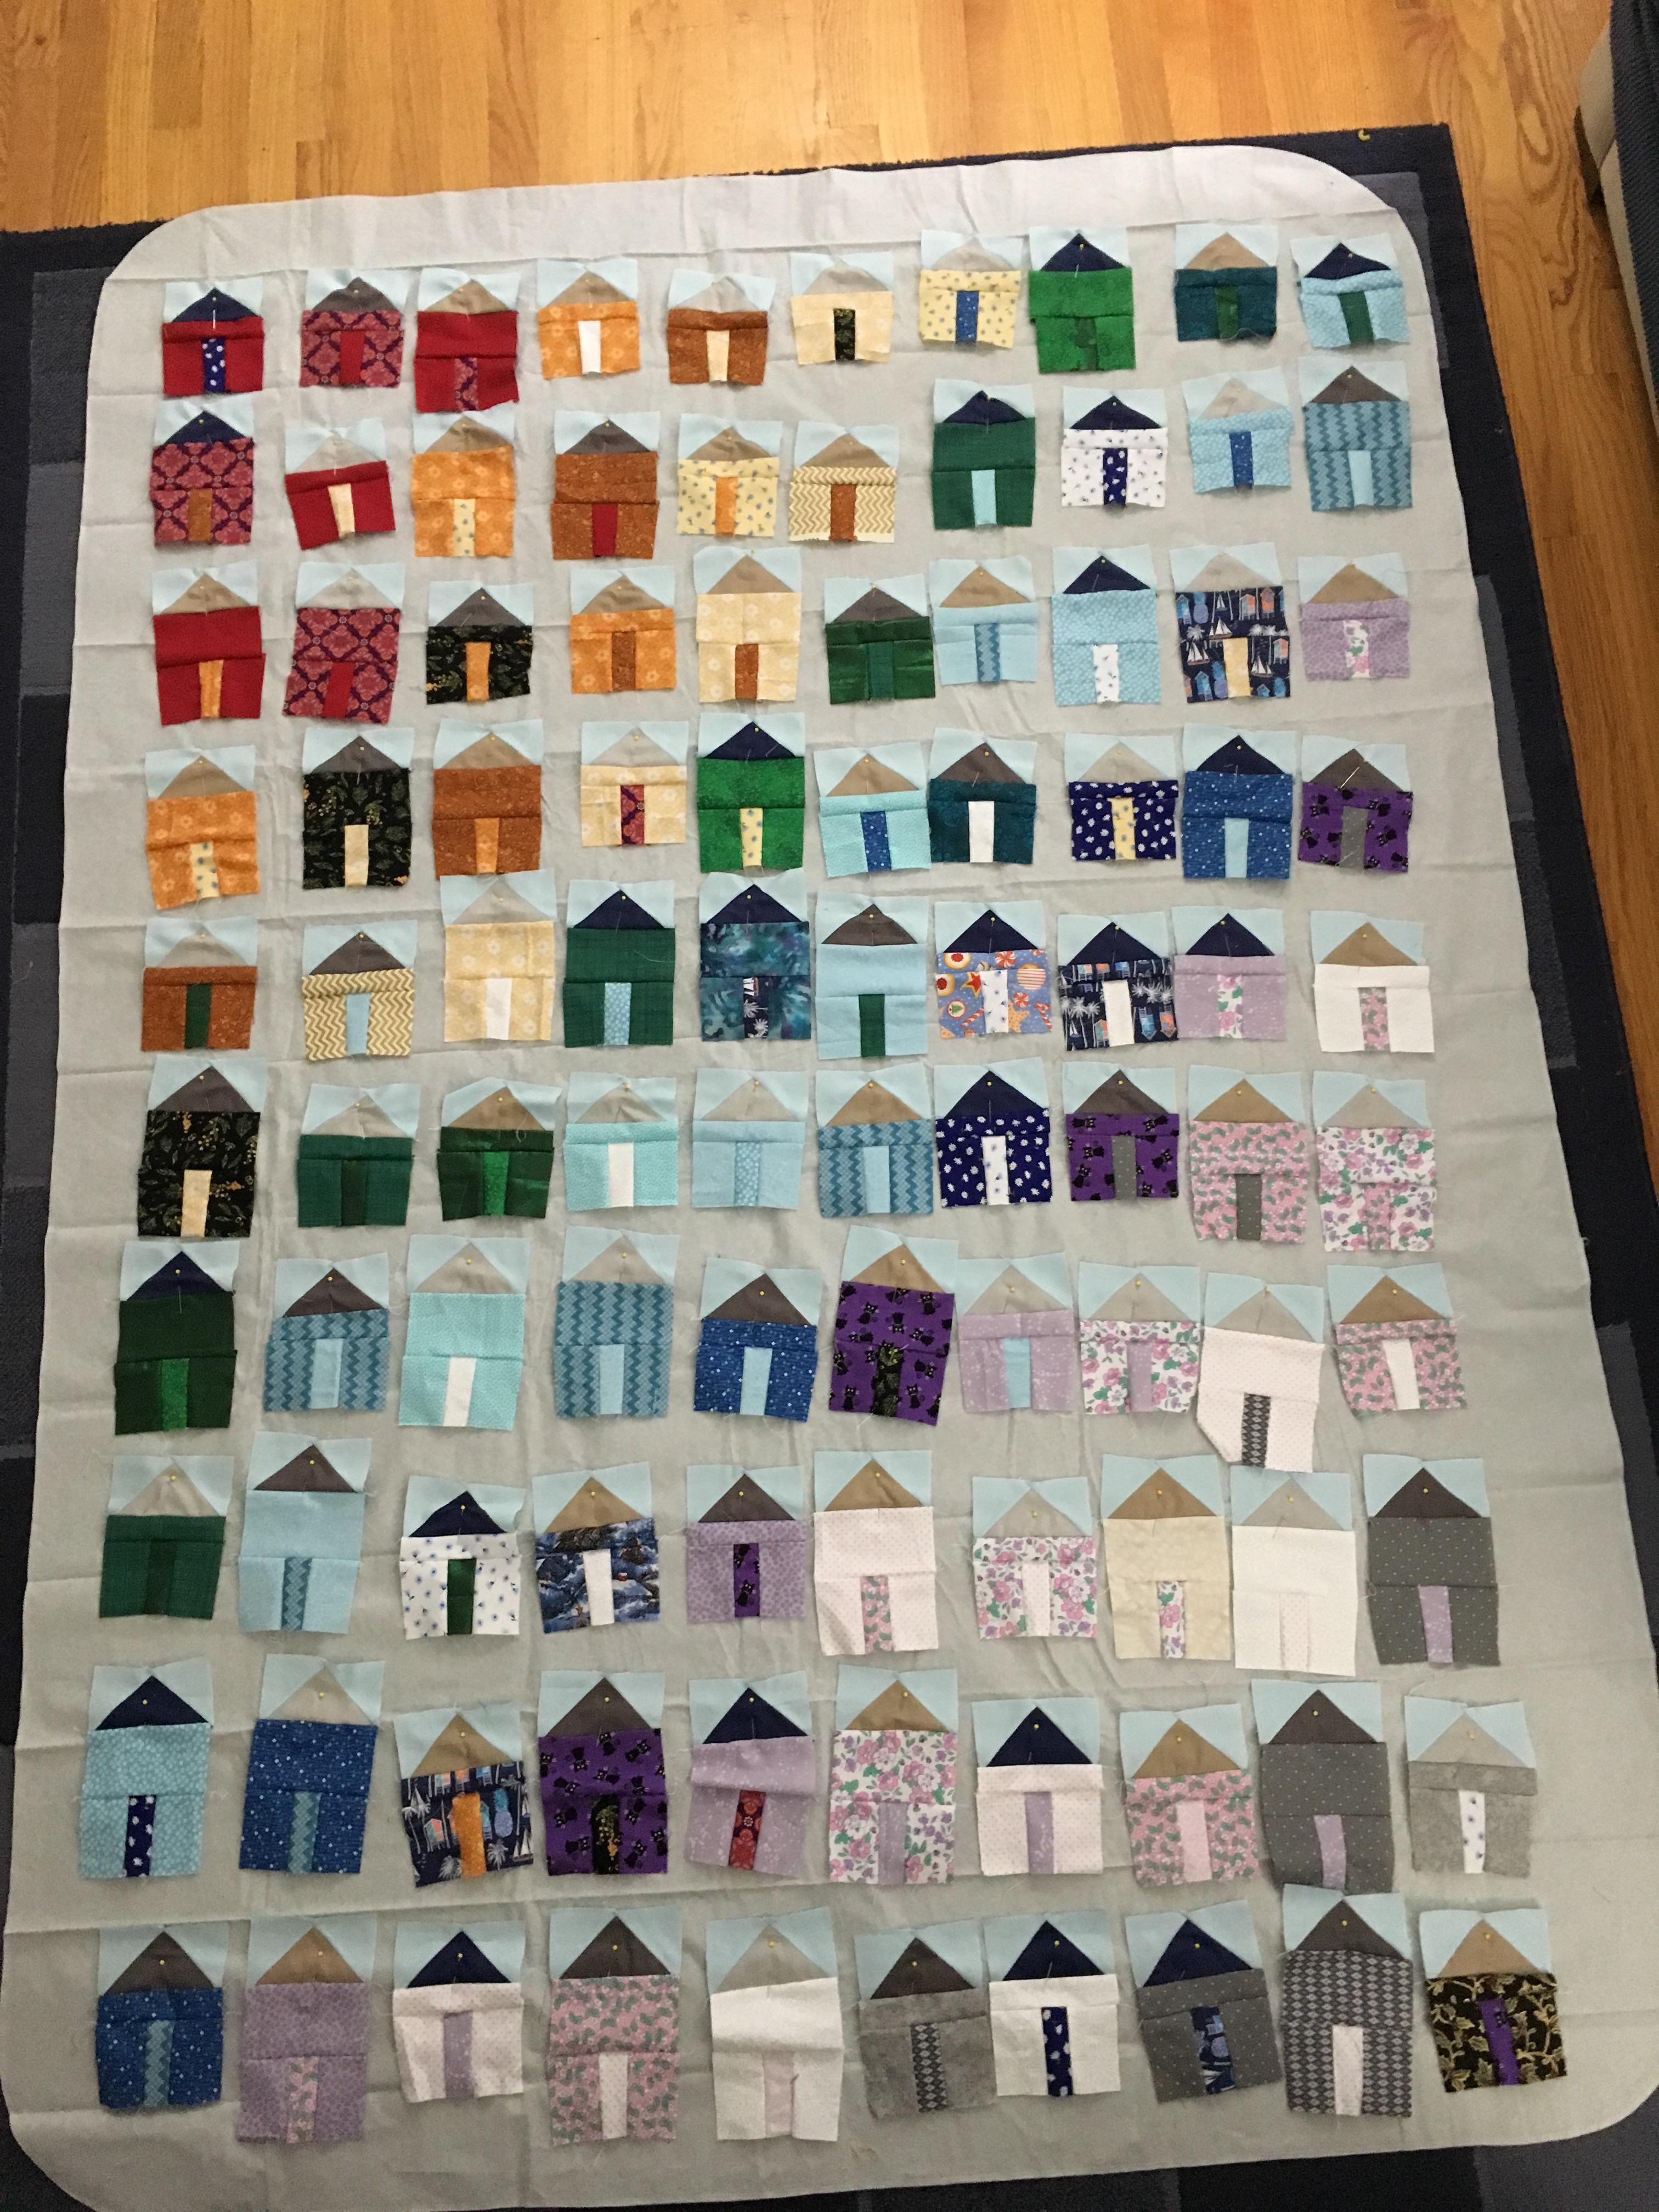 Tiny Houses Quilt Pattern : houses, quilt, pattern, Working, House, Quilt, Scraps, First, Months, Quilting., Stage, Project, Today!, Quilting